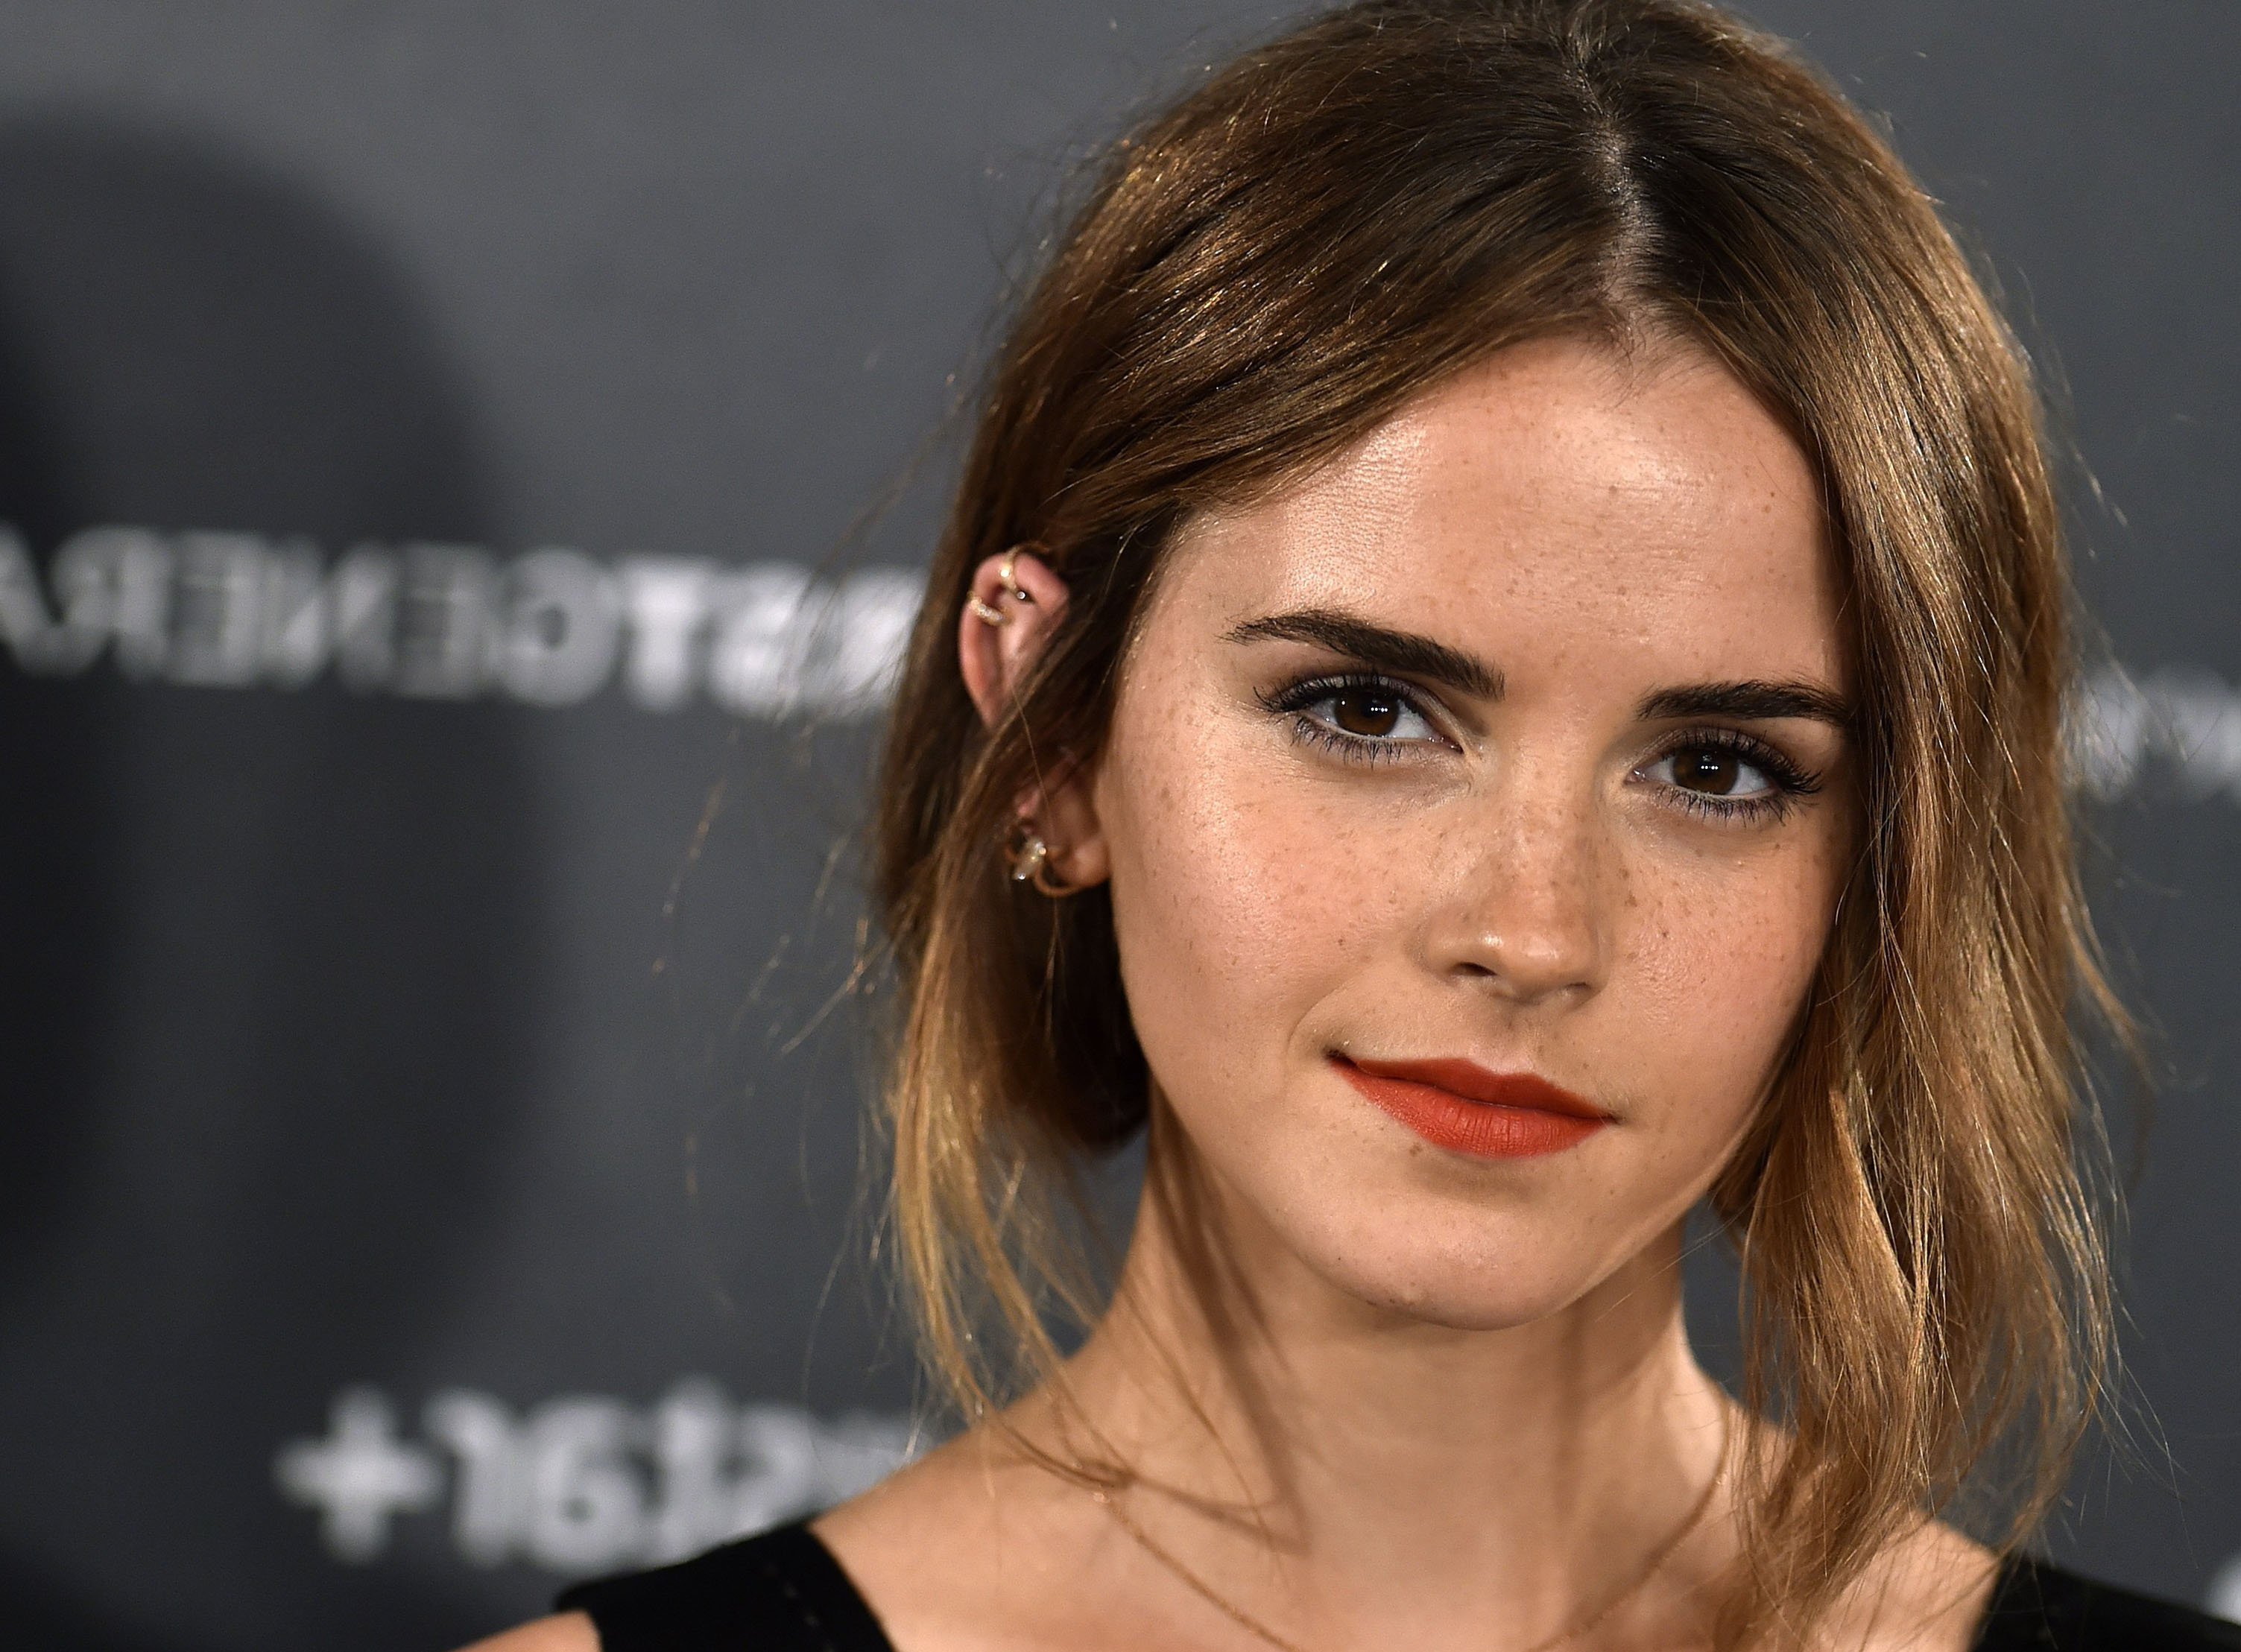 Emma Watson Naked Leaked Photos  Thefappening Strikes -1285